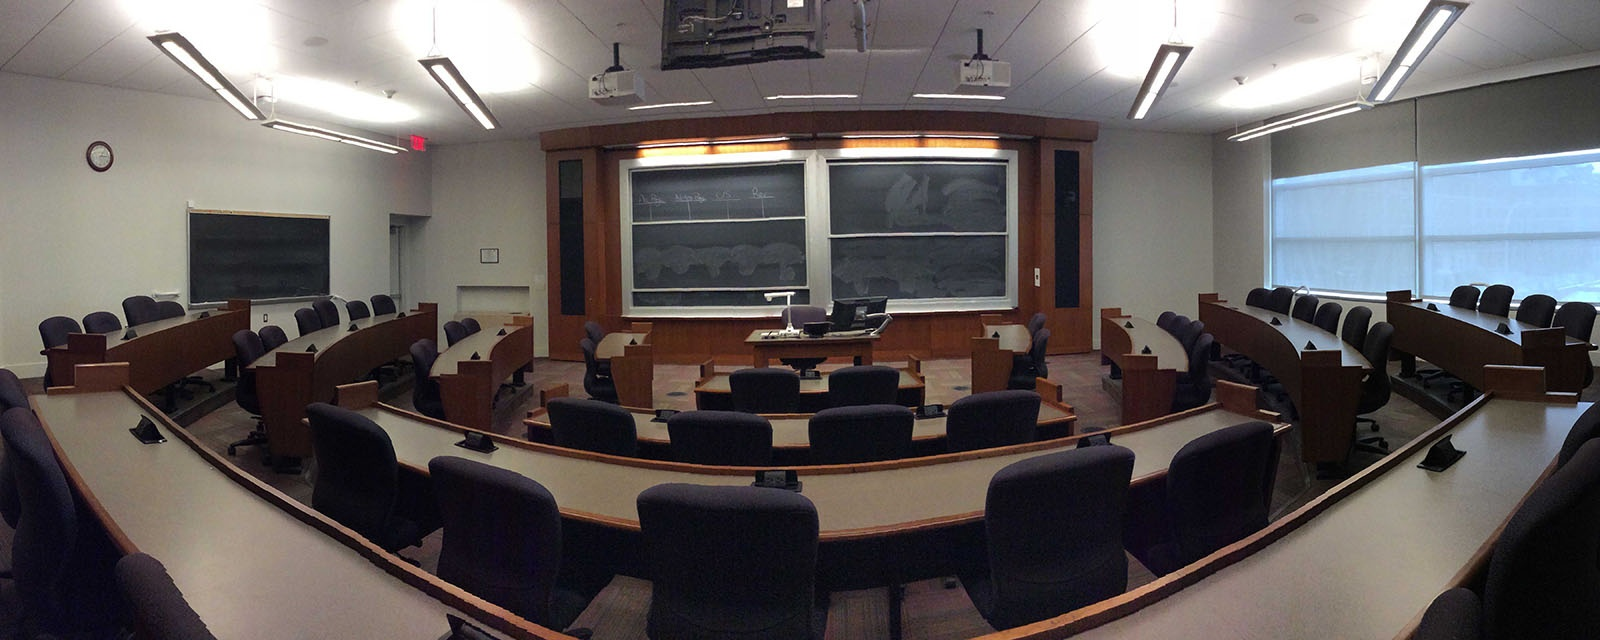 Panorama SOM 201 from back of room, stadium seating, moveable chairs, teaching station in front center